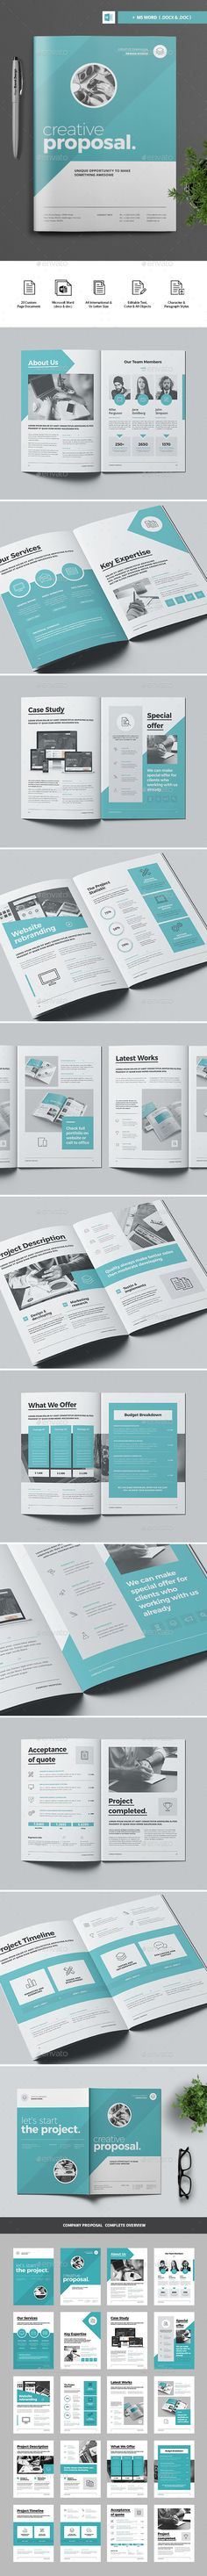 Proposal Clean and Professional Proposal Template InDesign